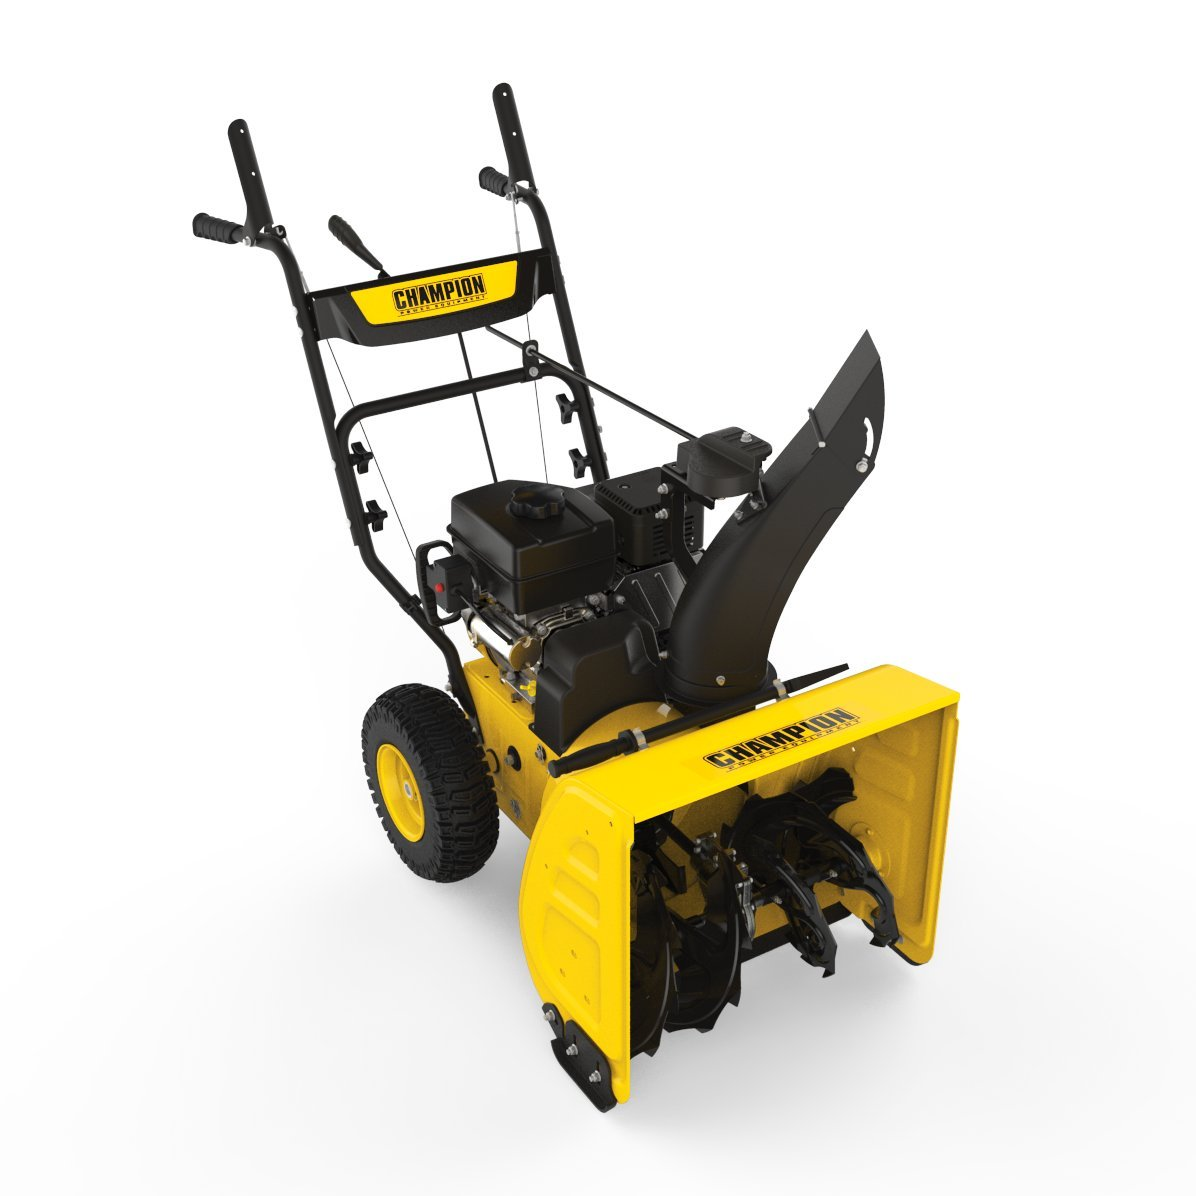 Champion 224cc Compact 24-Inch 2-Stage Gas Snow Blower with Electric Start by Champion Power Equipment